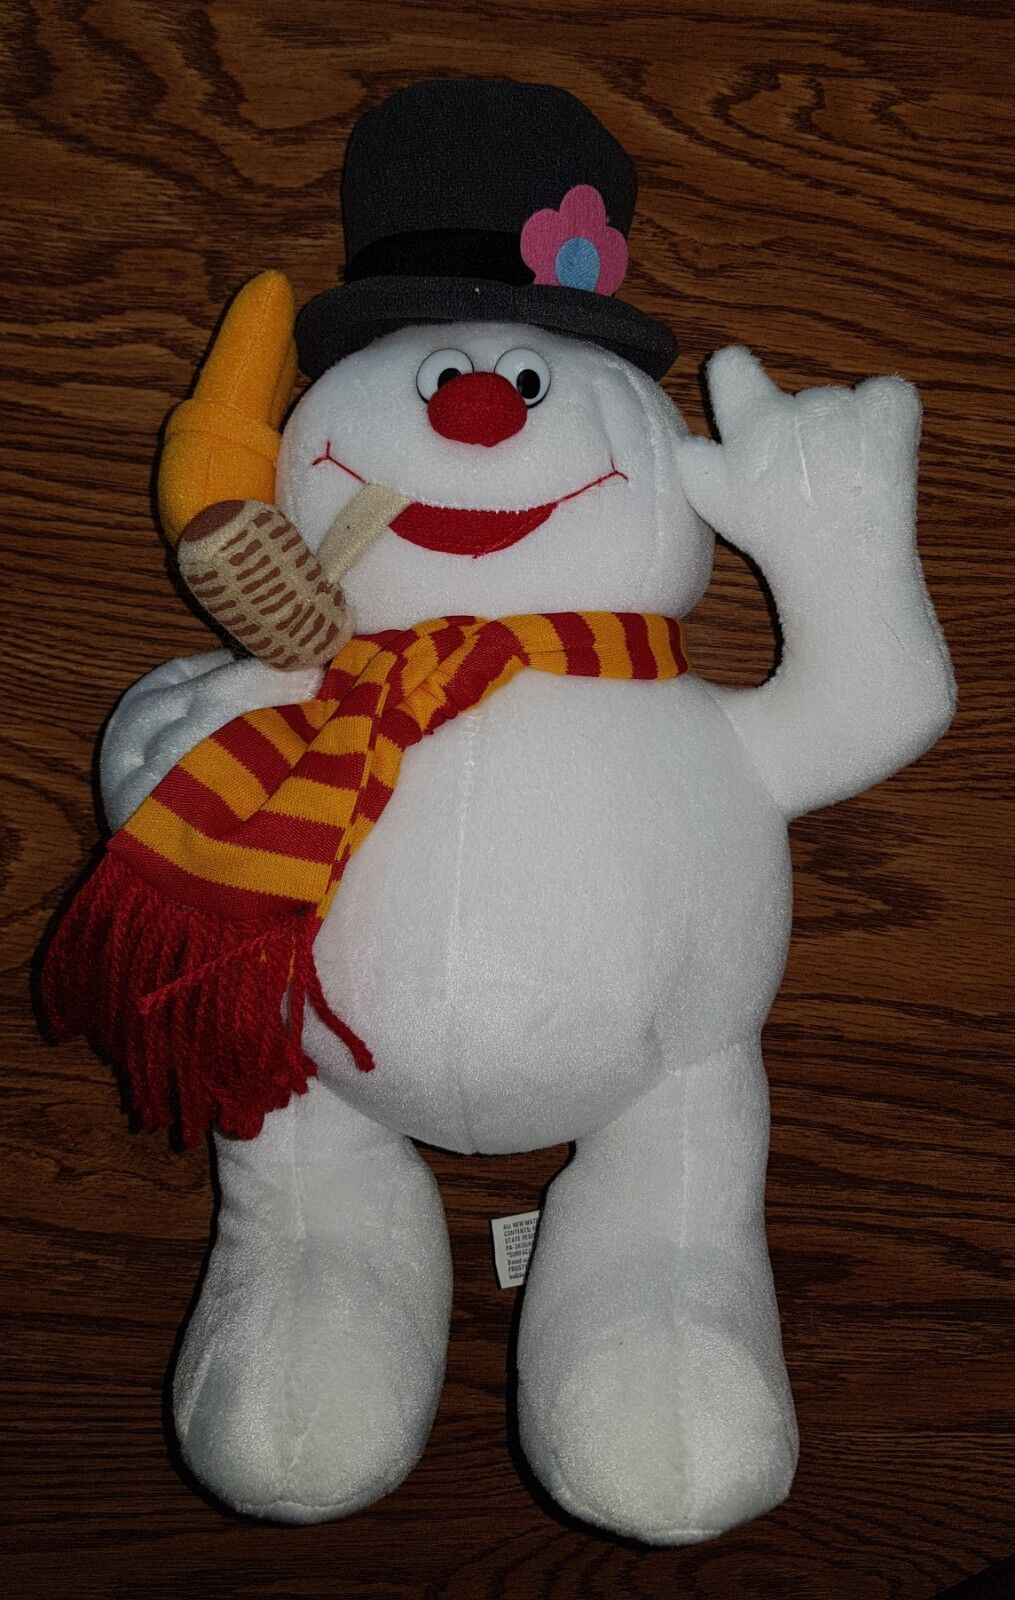 RARE 1999 Rudolph Christmas Frosty the Snowman Stuffins Plush Stuffed Animal